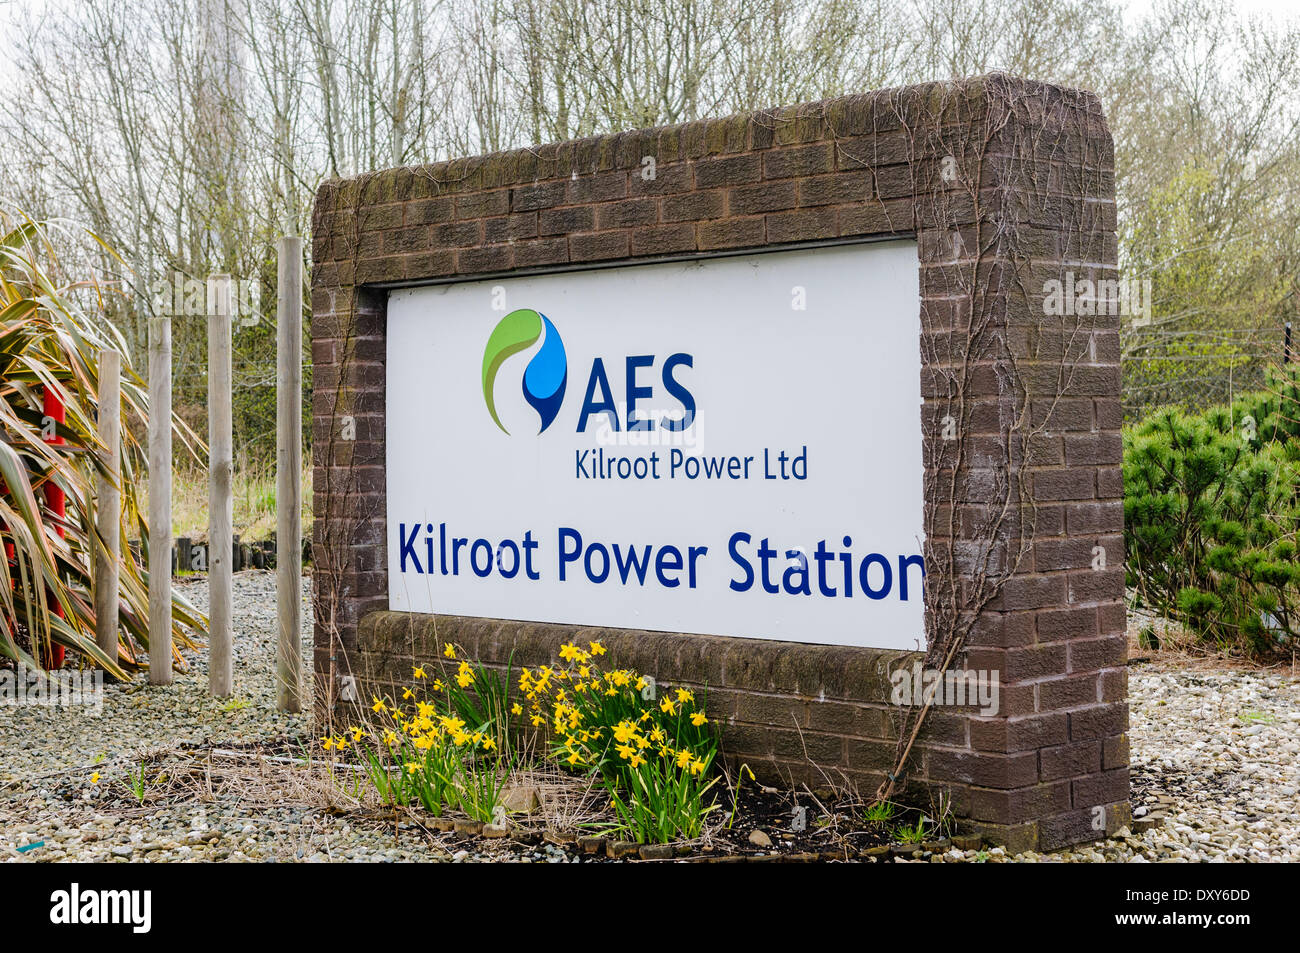 Northern Ireland, UK. 1st Apr 2014.  NI's biggest power generator plans to build a huge battery facility that can store energy produced by wind farms.  AES, owner of Kilroot and Ballylumford power stations, plans to build the 100 mega watt (MW) facility at Kilroot.  The company claims the facility will lower the cost to consumers, help meet renewable energy targets and improve the flexibility of the local grid. Credit:  Stephen Barnes/Alamy Live News - Stock Image